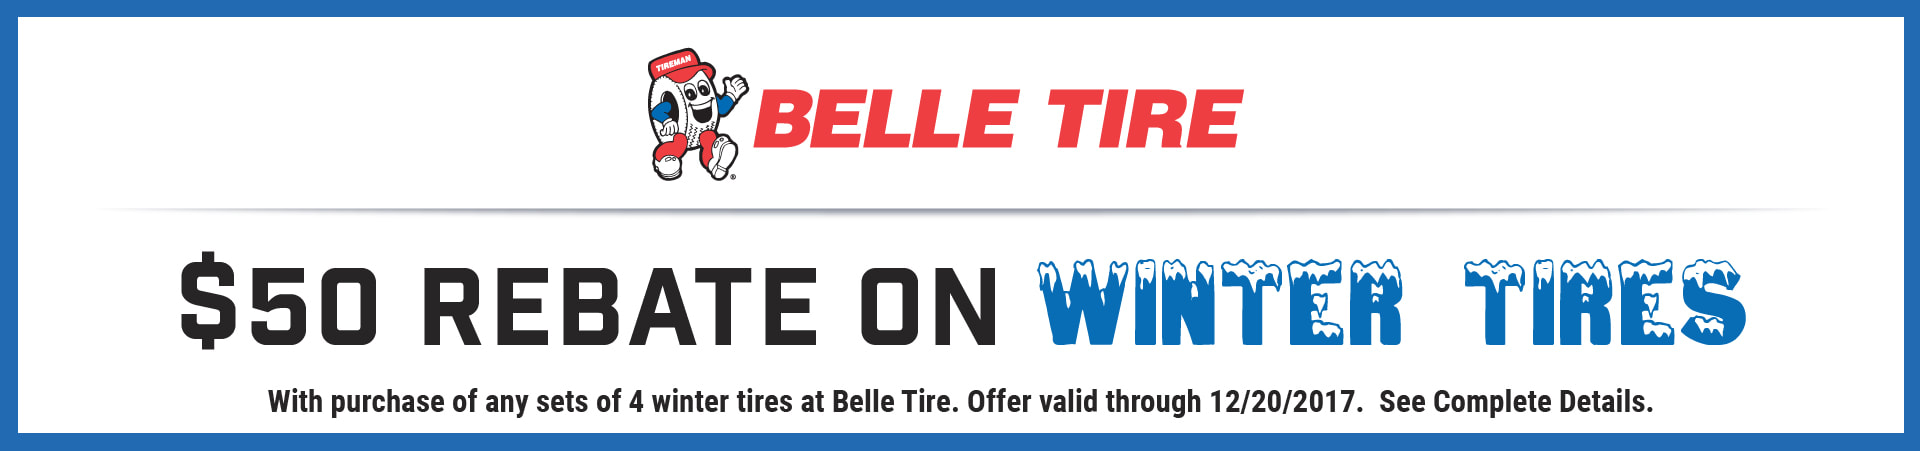 Belle Tire Winter Tire Rebate